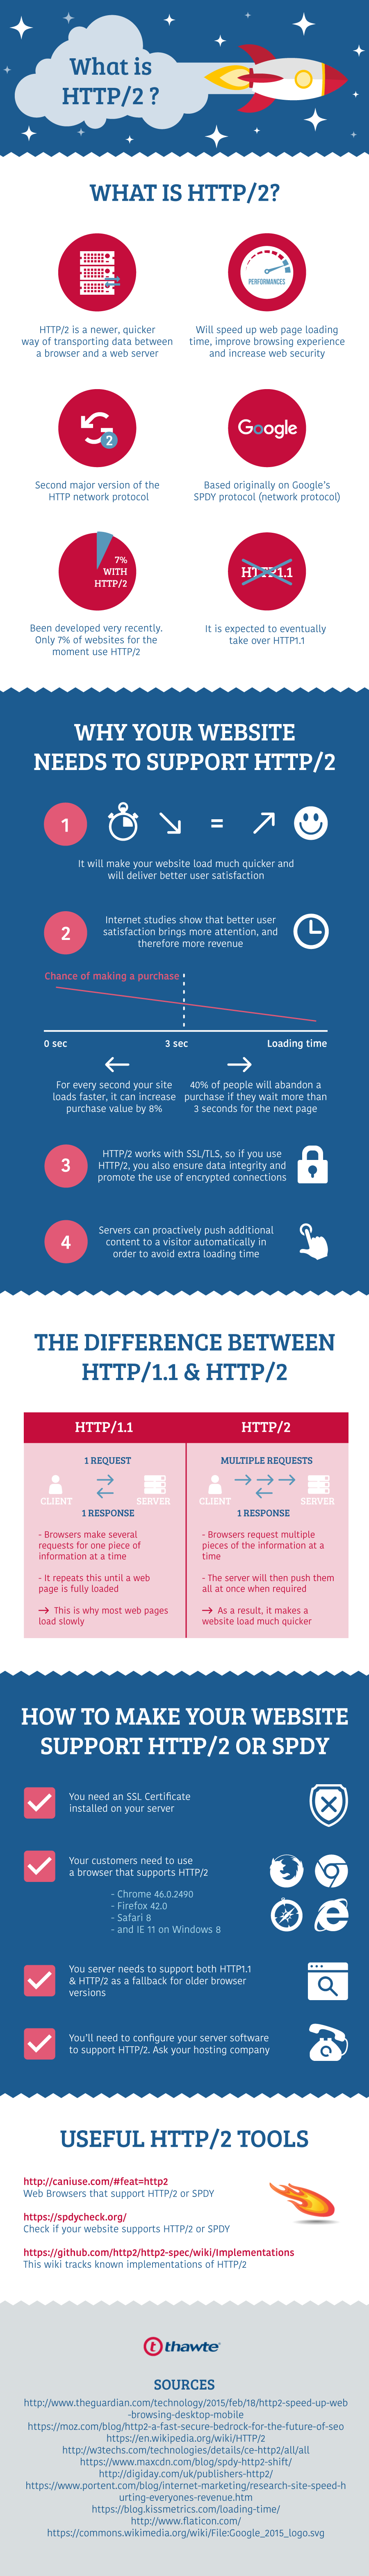 what is HTTP 2 and why your website needs it